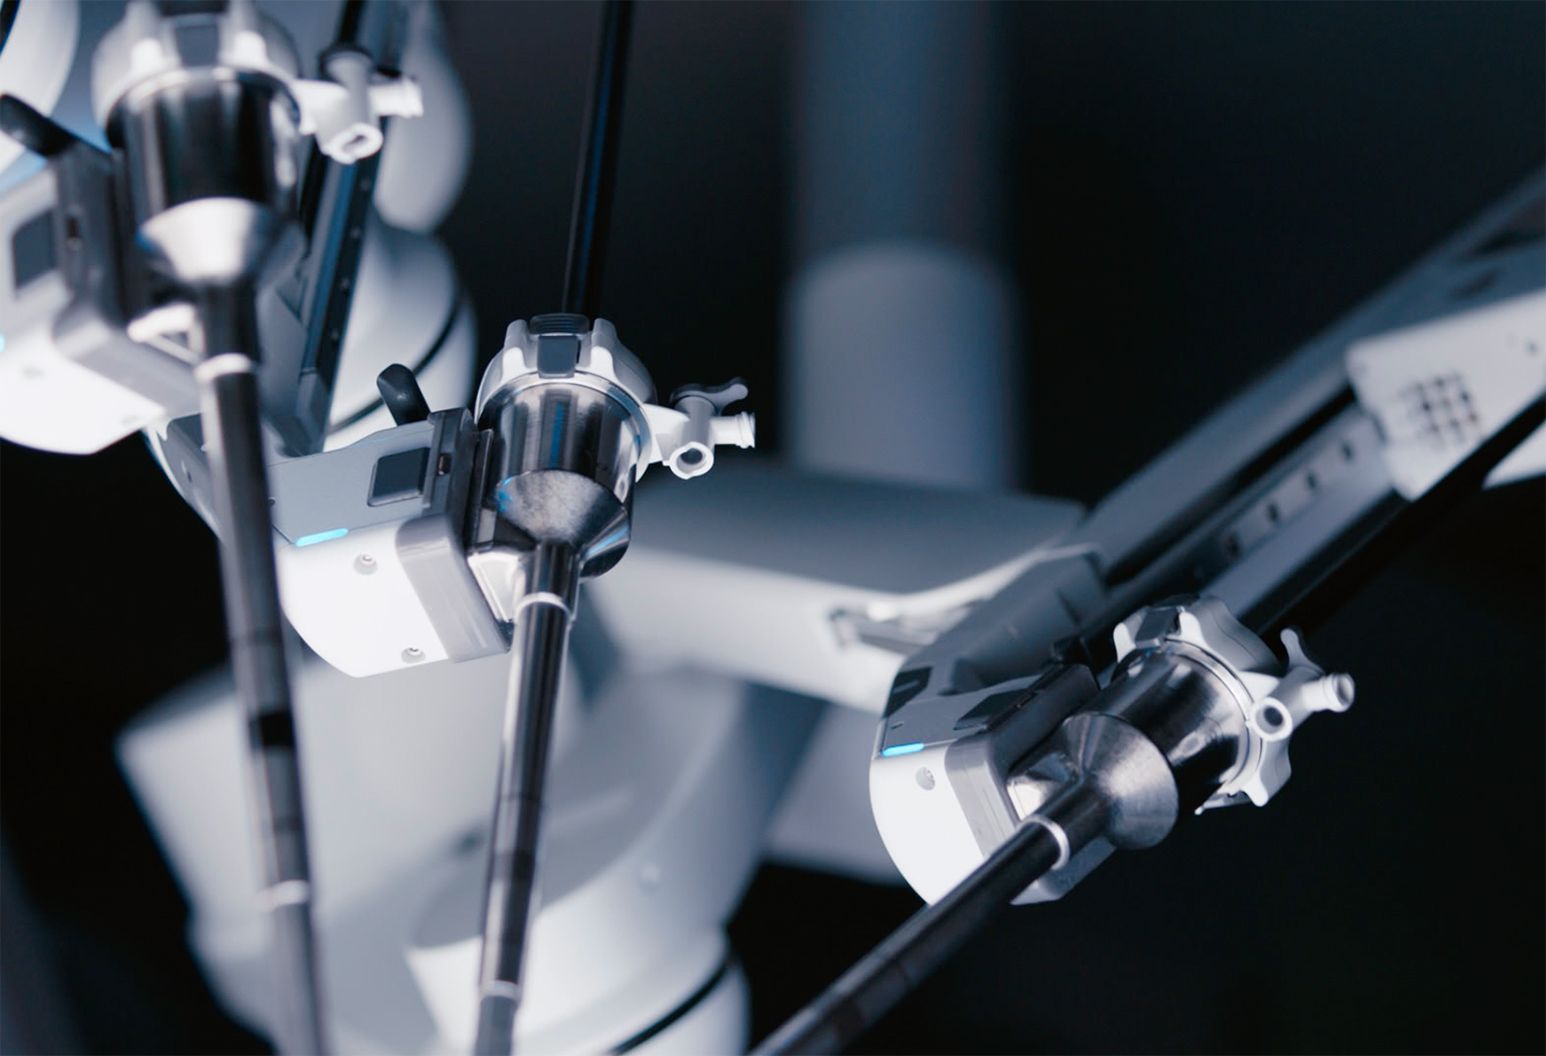 An image of a robotic surgery machine.